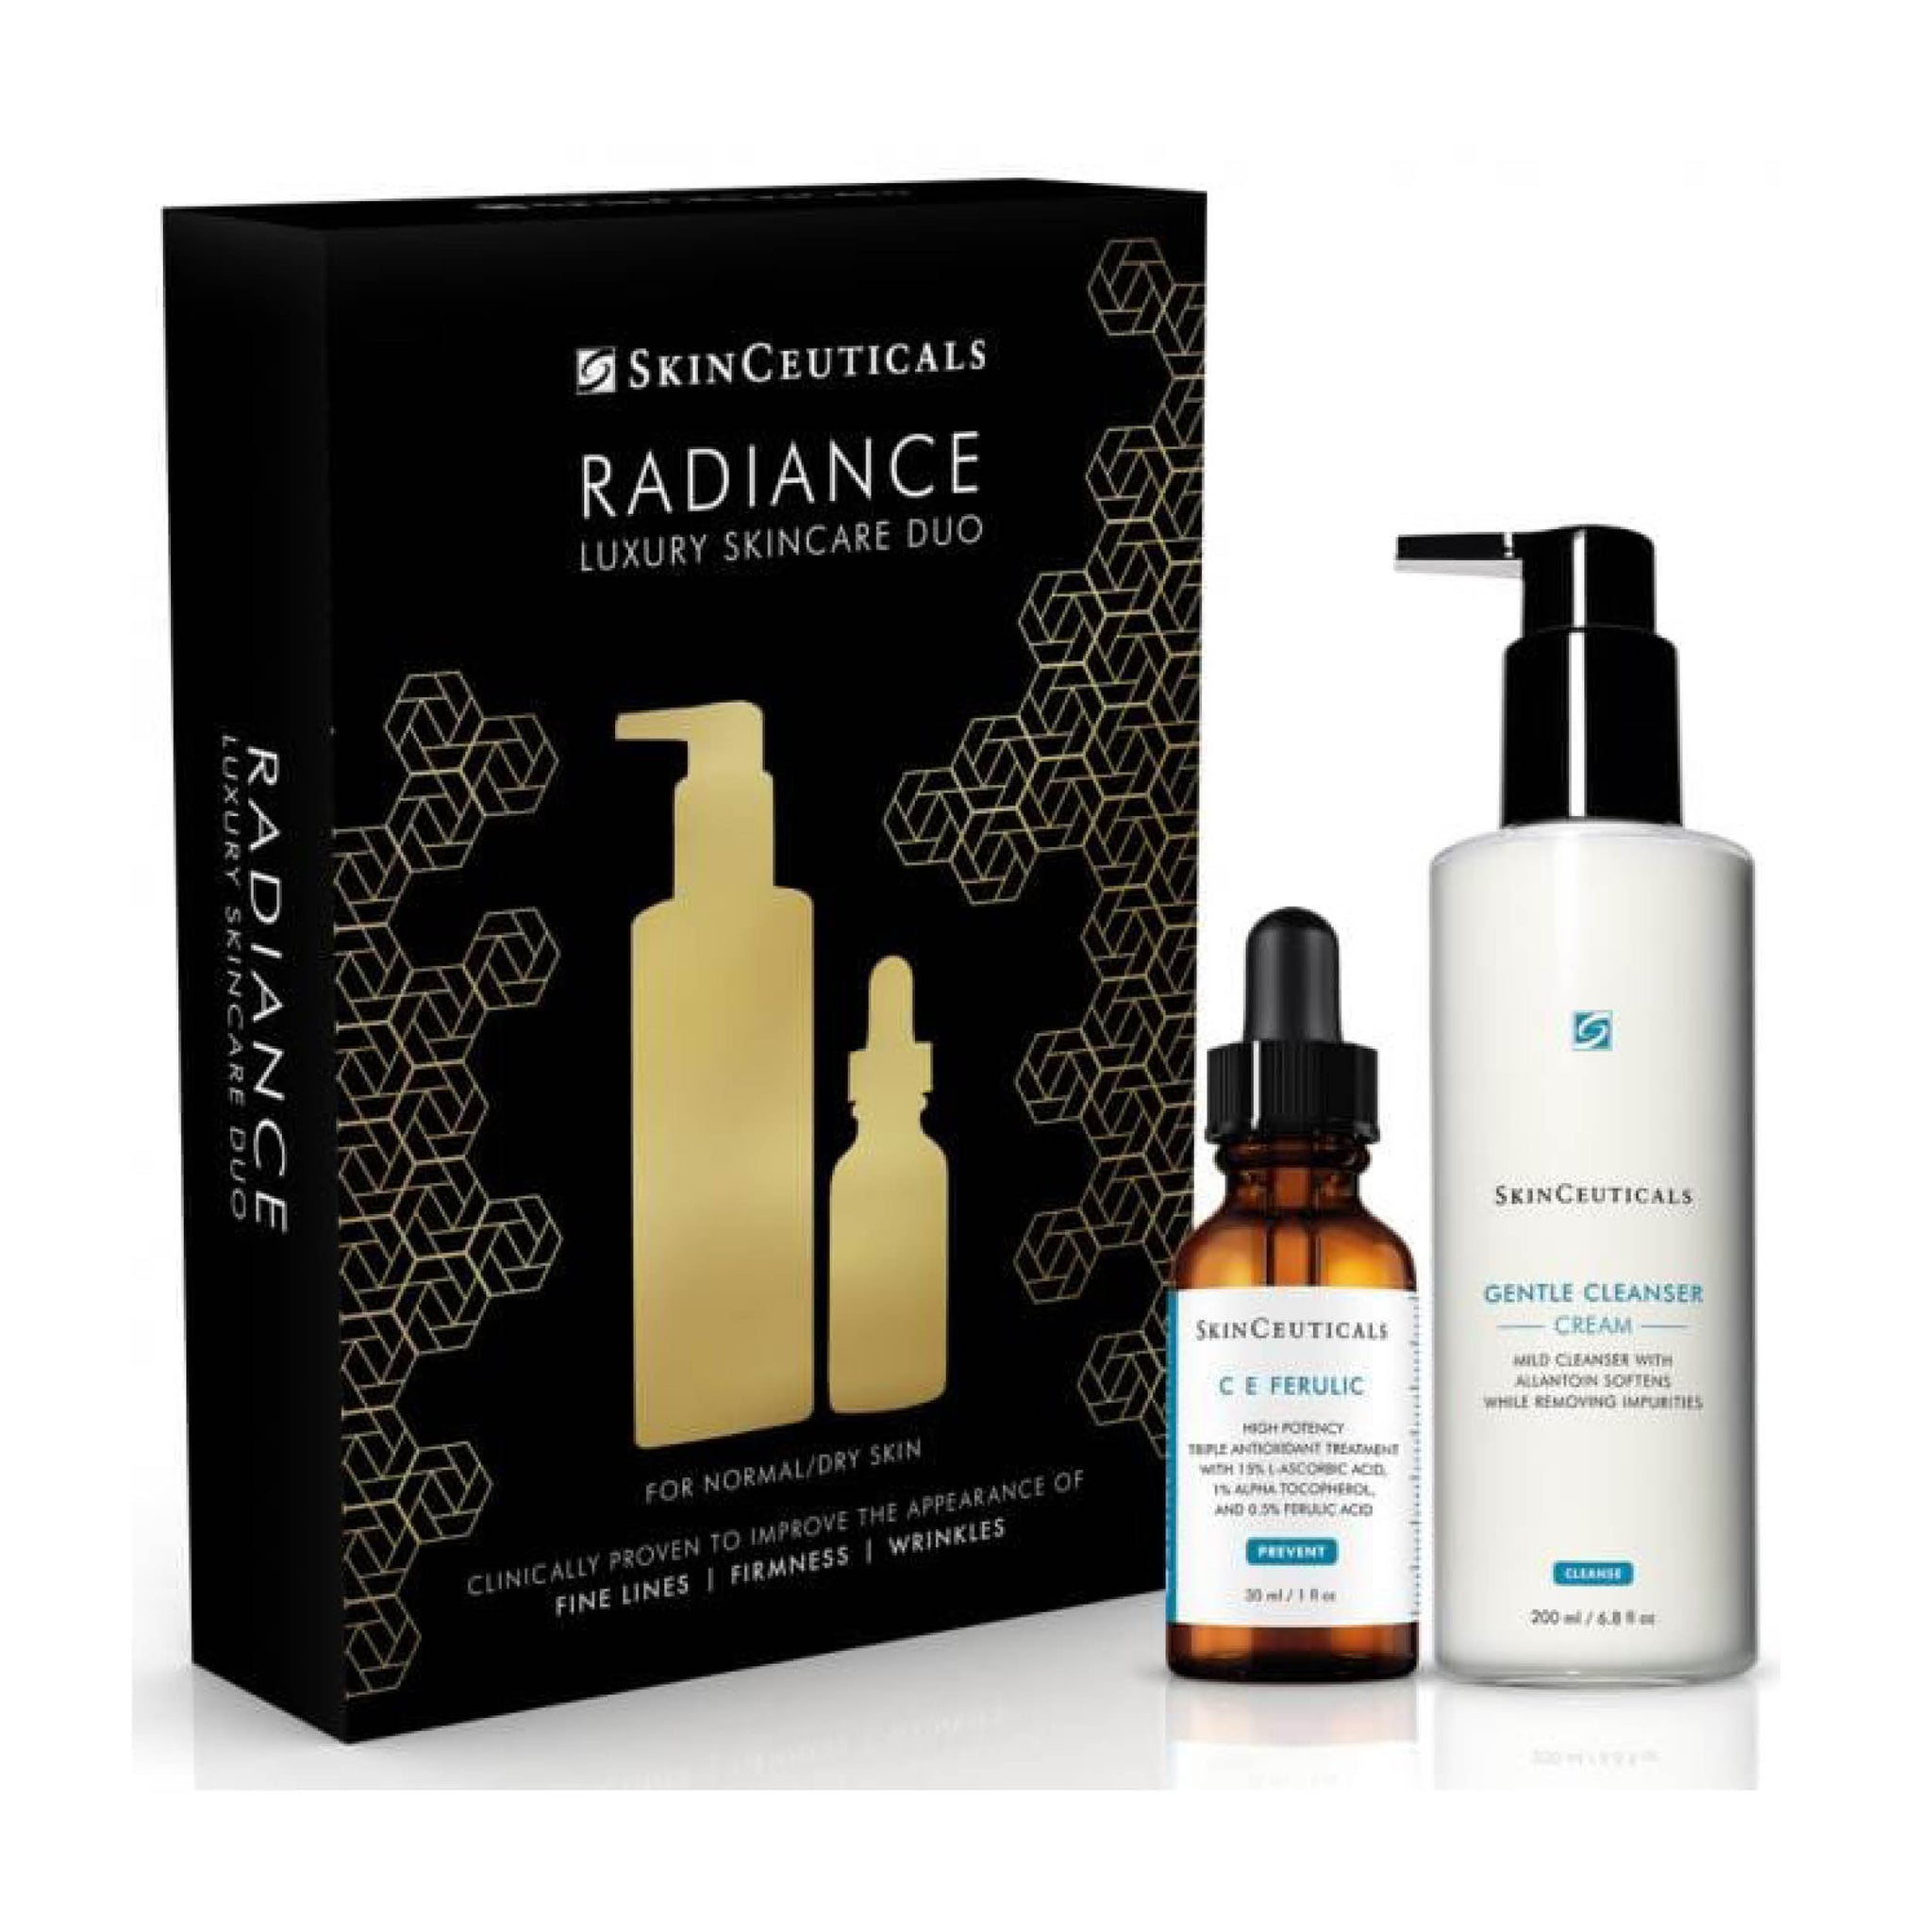 SkinCeuticals Radiance Luxury Skincare Duo Gift Set